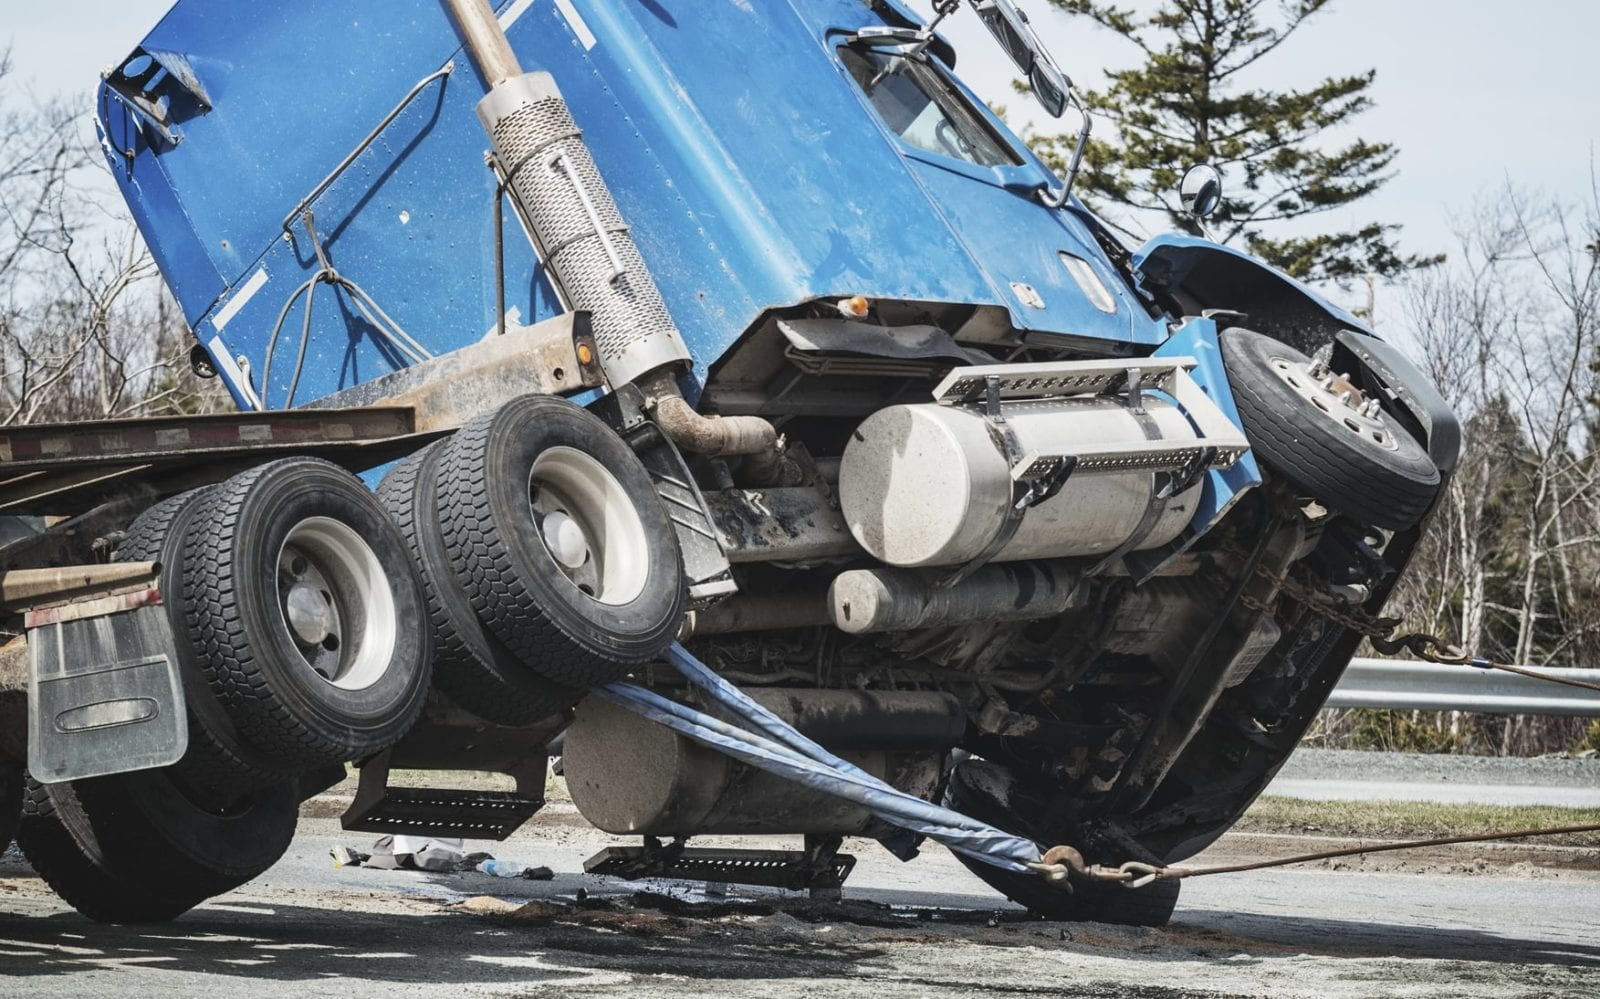 18-wheeler Truck Accident Stock Photo